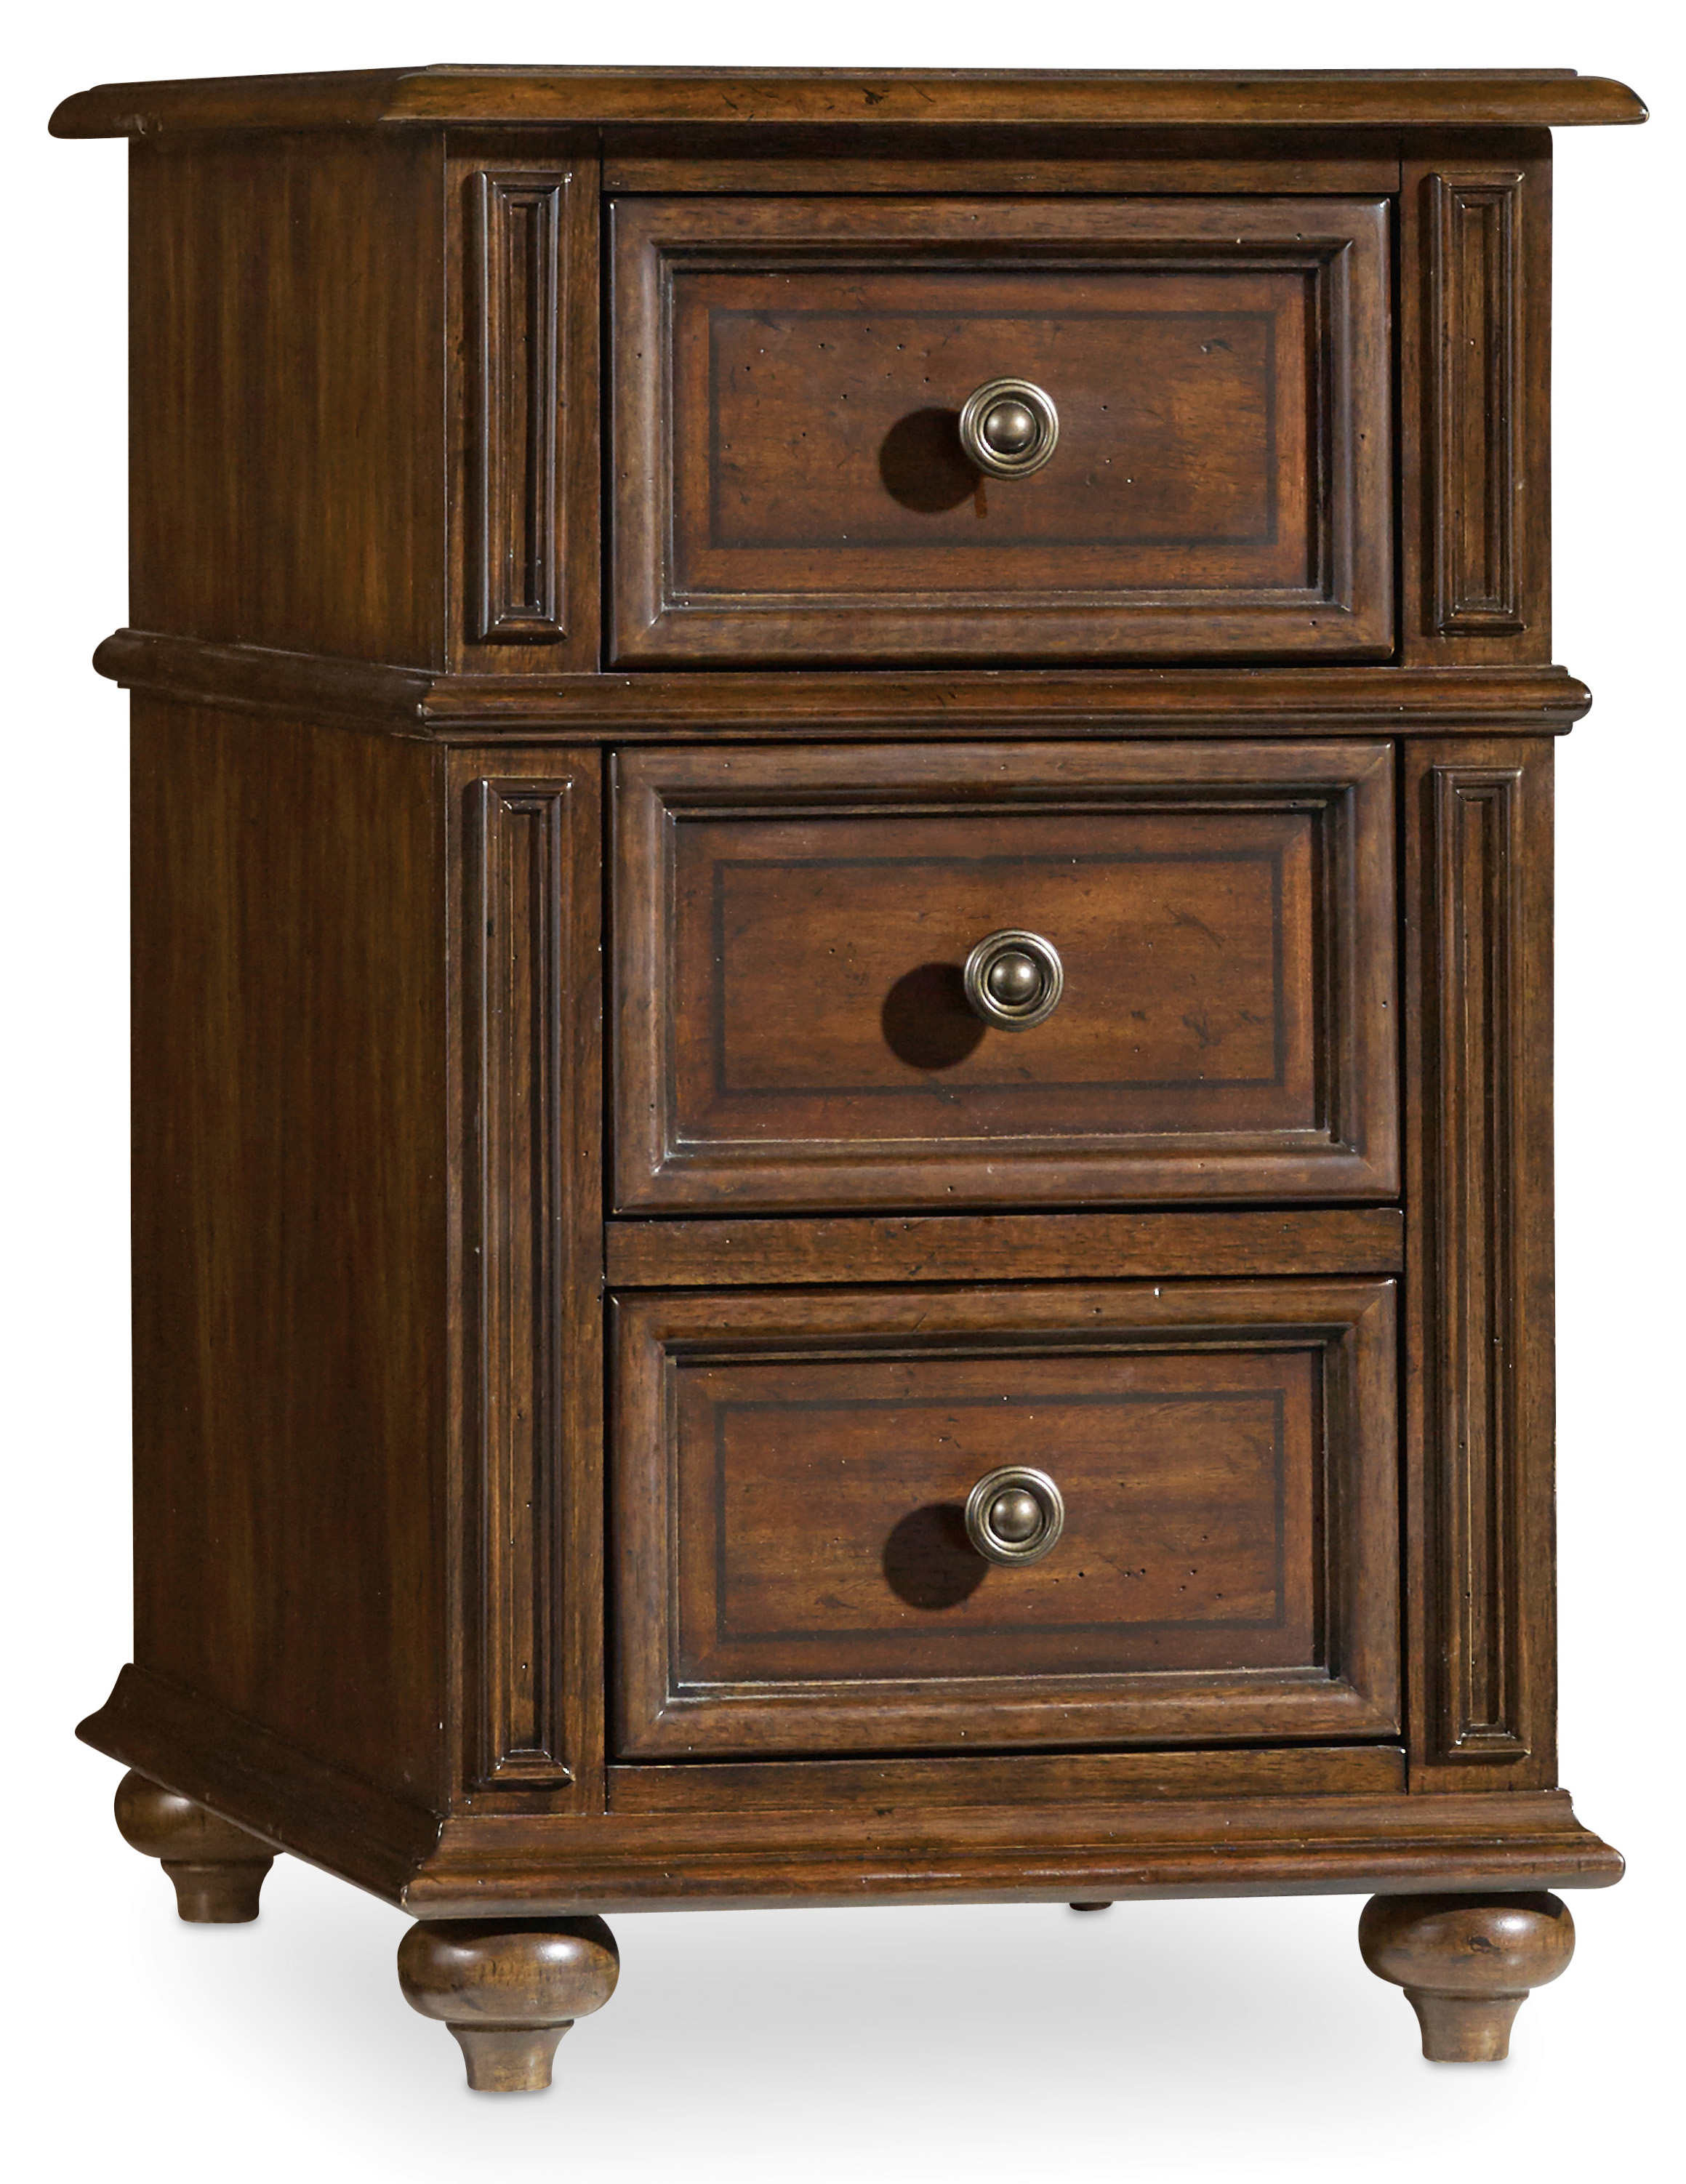 Hooker Furniture Leesburg Chairside Chest - Item Number: 5381-80114